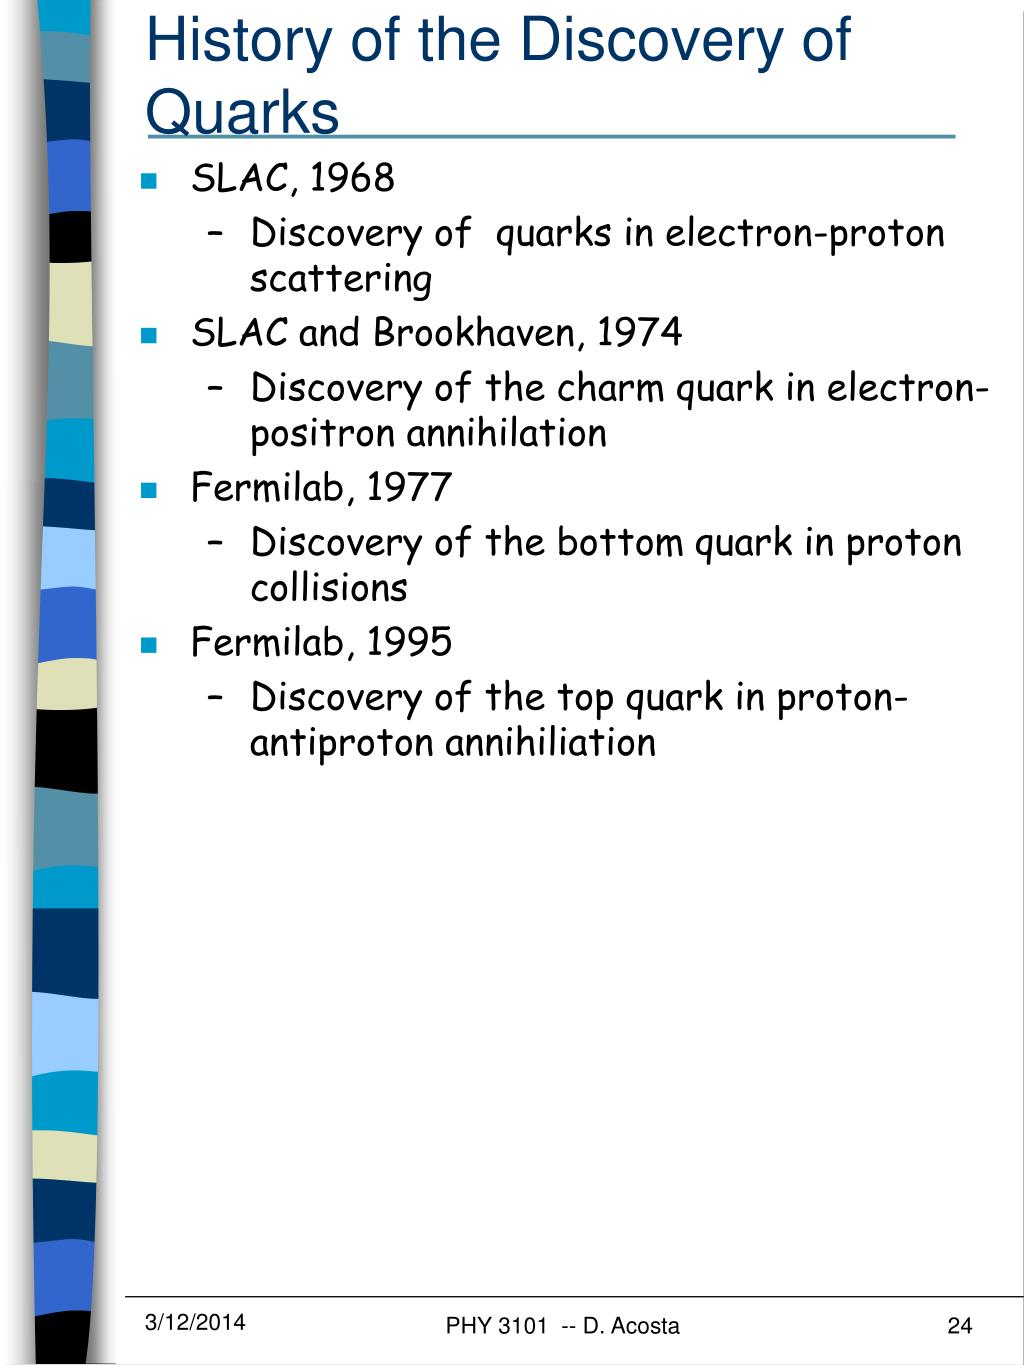 History of the Discovery of Quarks